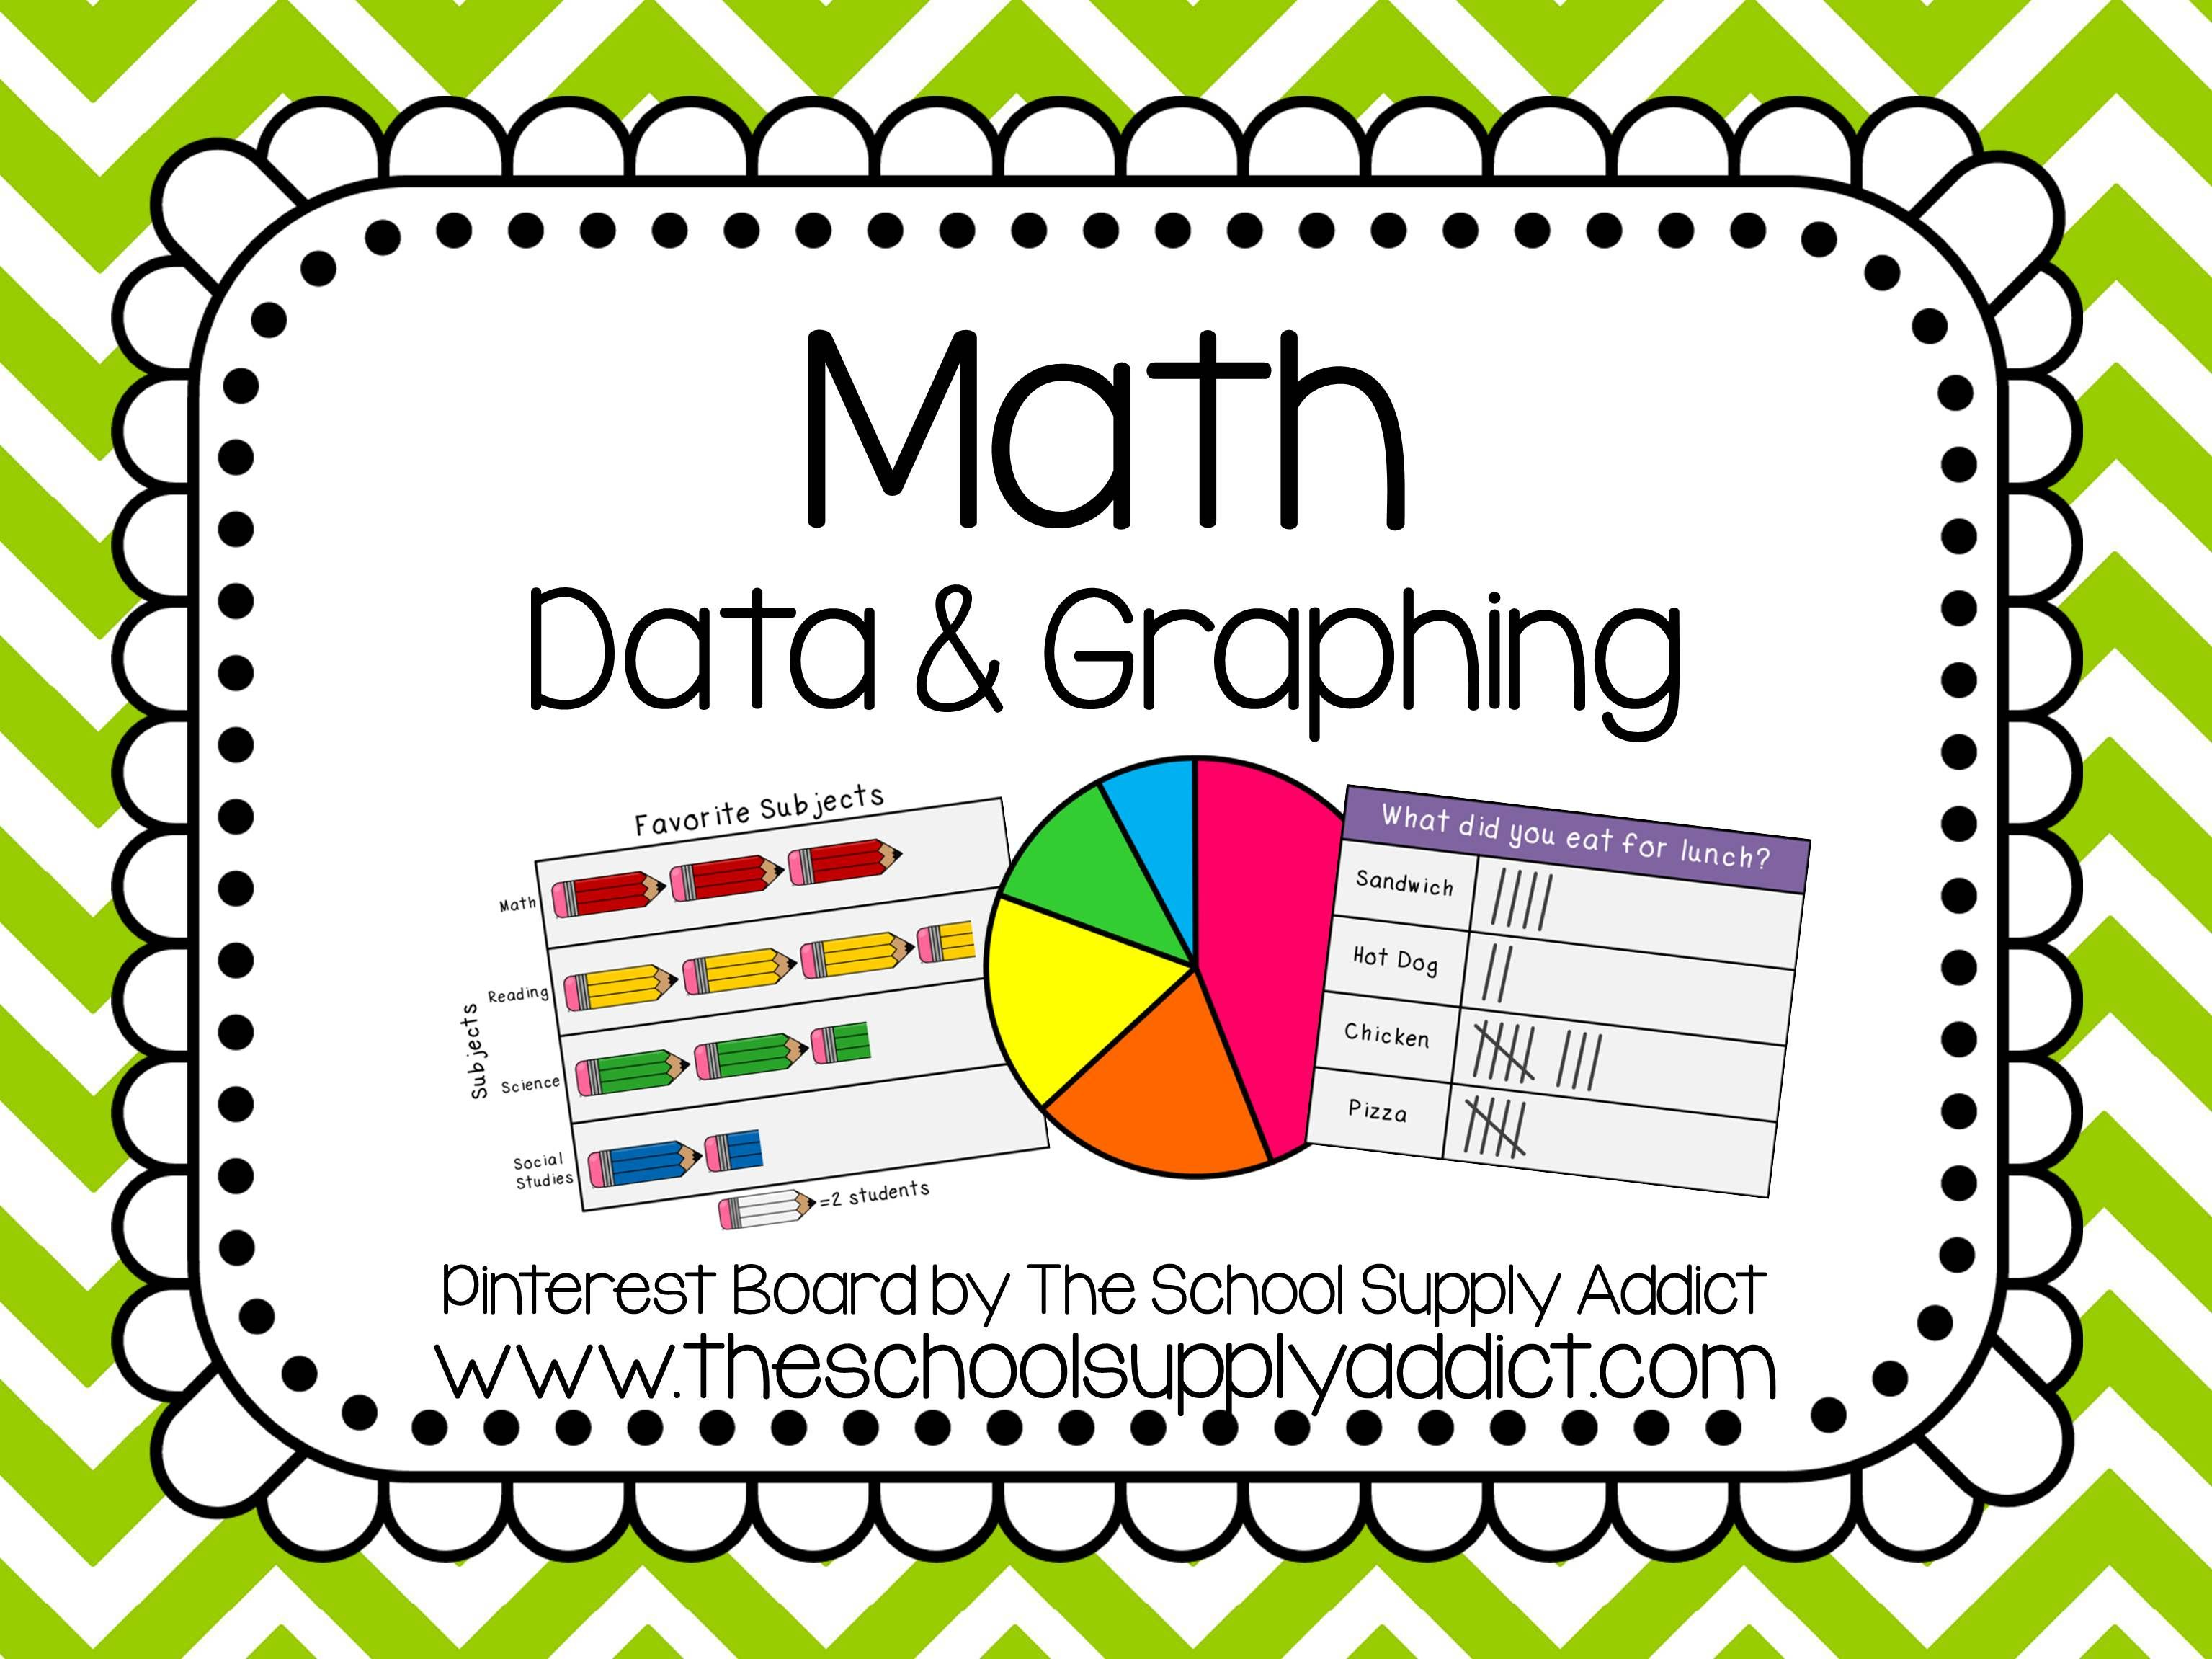 Data Amp Graphing Pin Board By The School Supply Addict